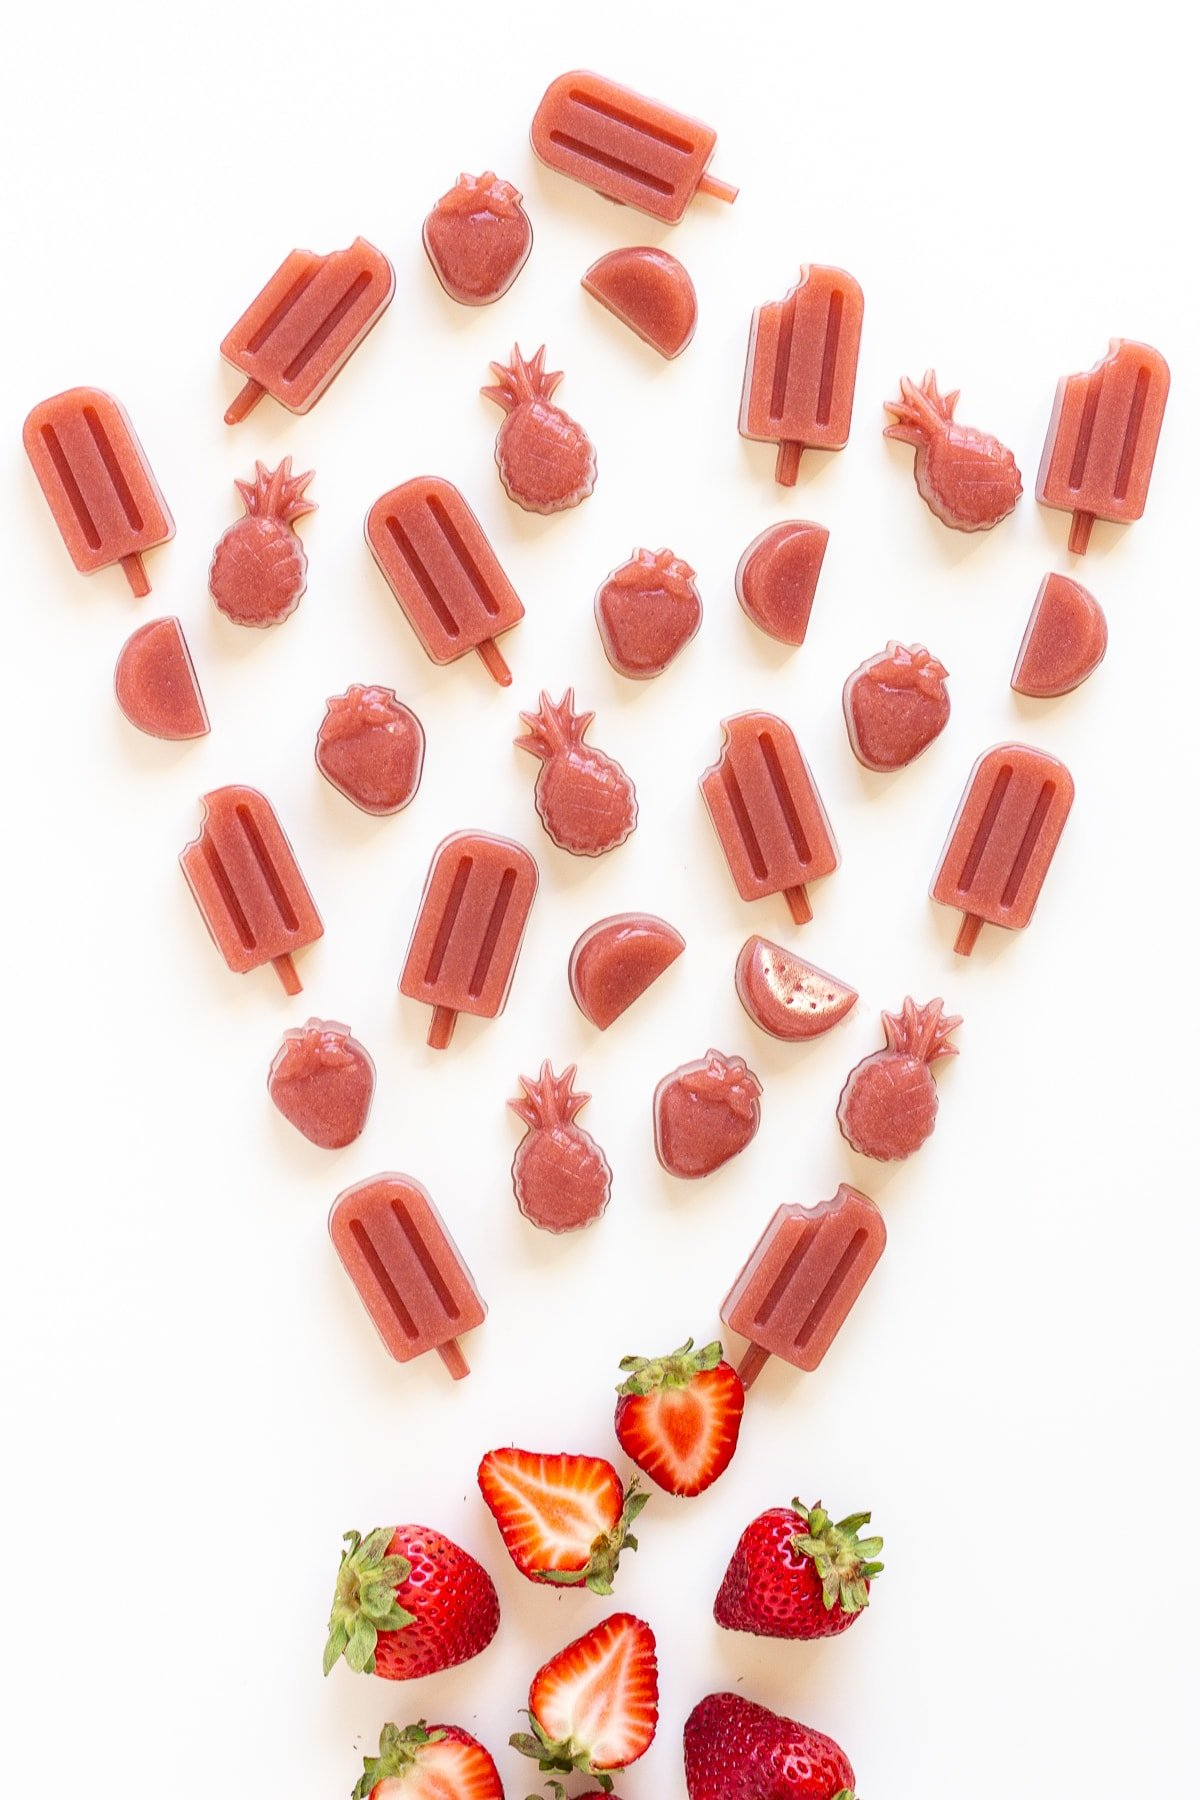 Variety of different shaped homemade gummies and fresh strawberries on a white background.